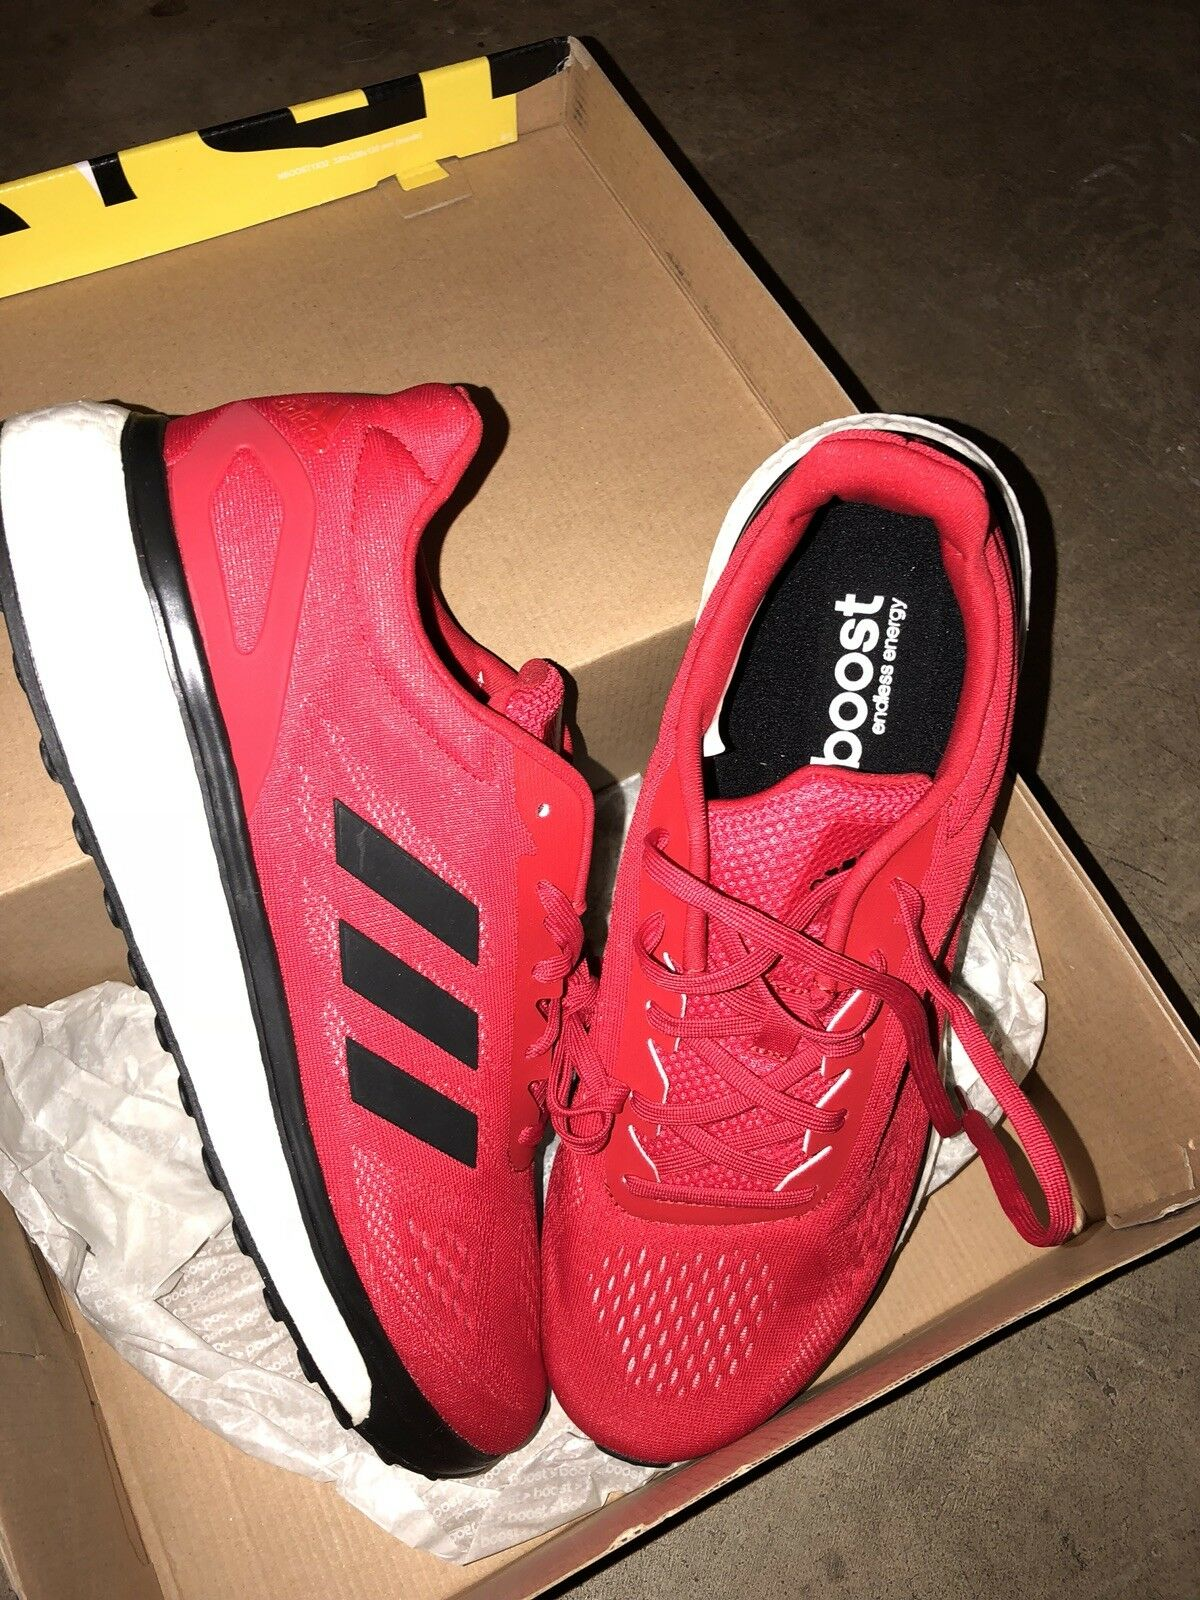 Adidas Boost  Sz 11.5 Adidas Sonic Drive BRAND NEW IN BOX